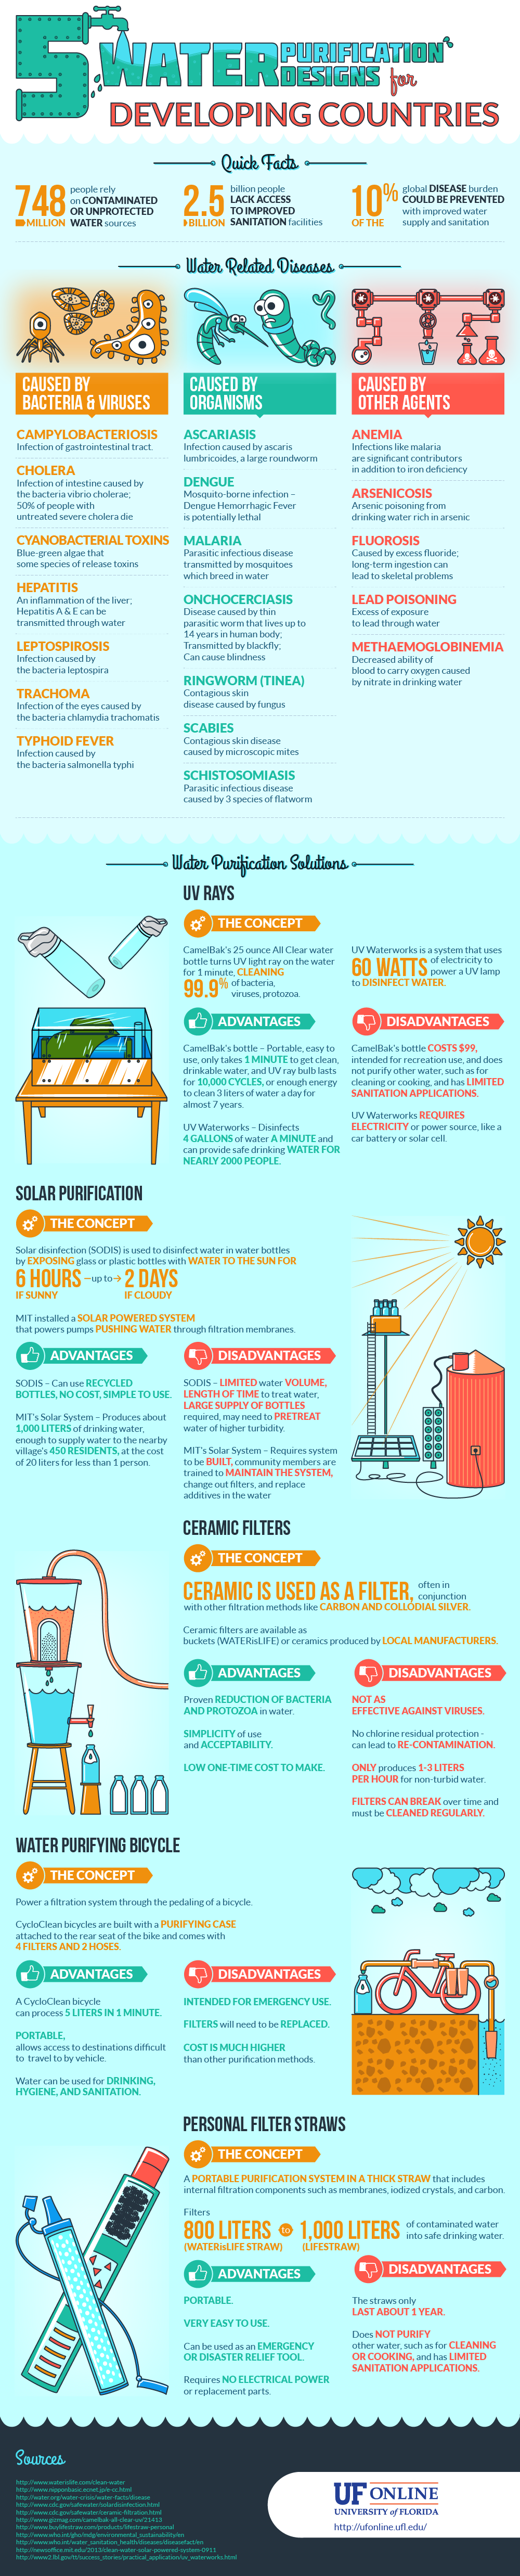 UF Online Infographic: Five Water Purification Designs for Developing Countries